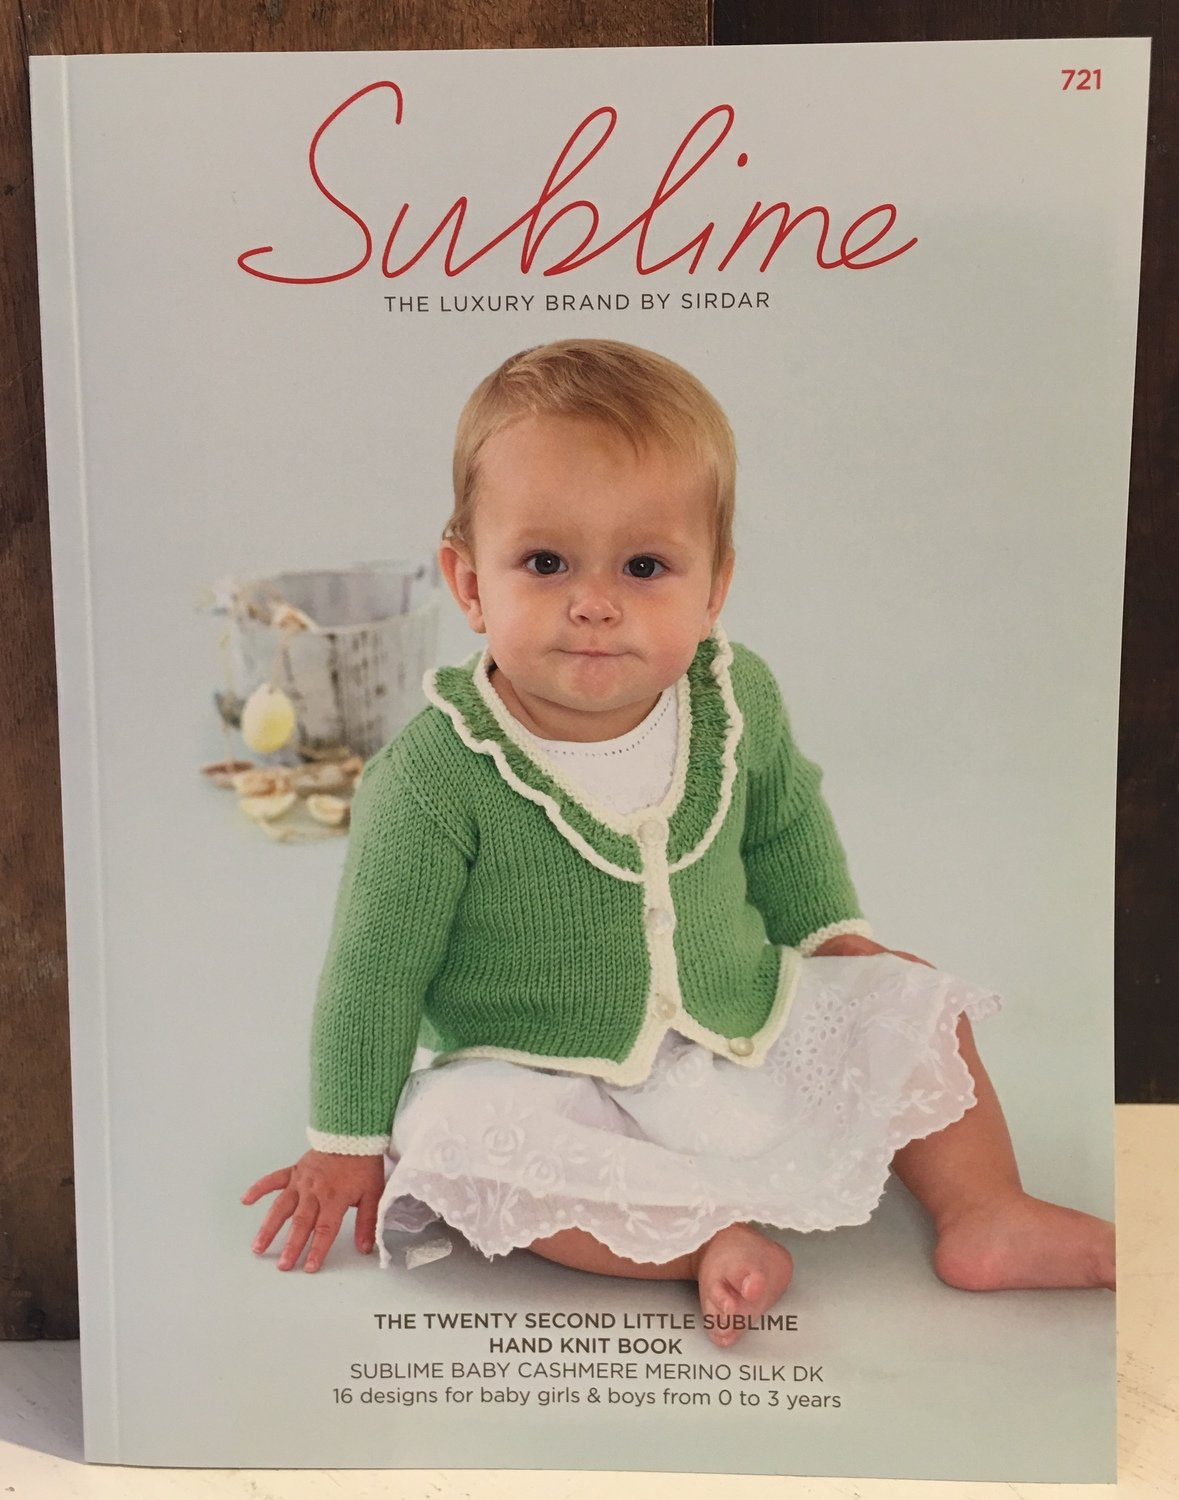 Sublime 721 The Twenty Second Little Sublime Handbook